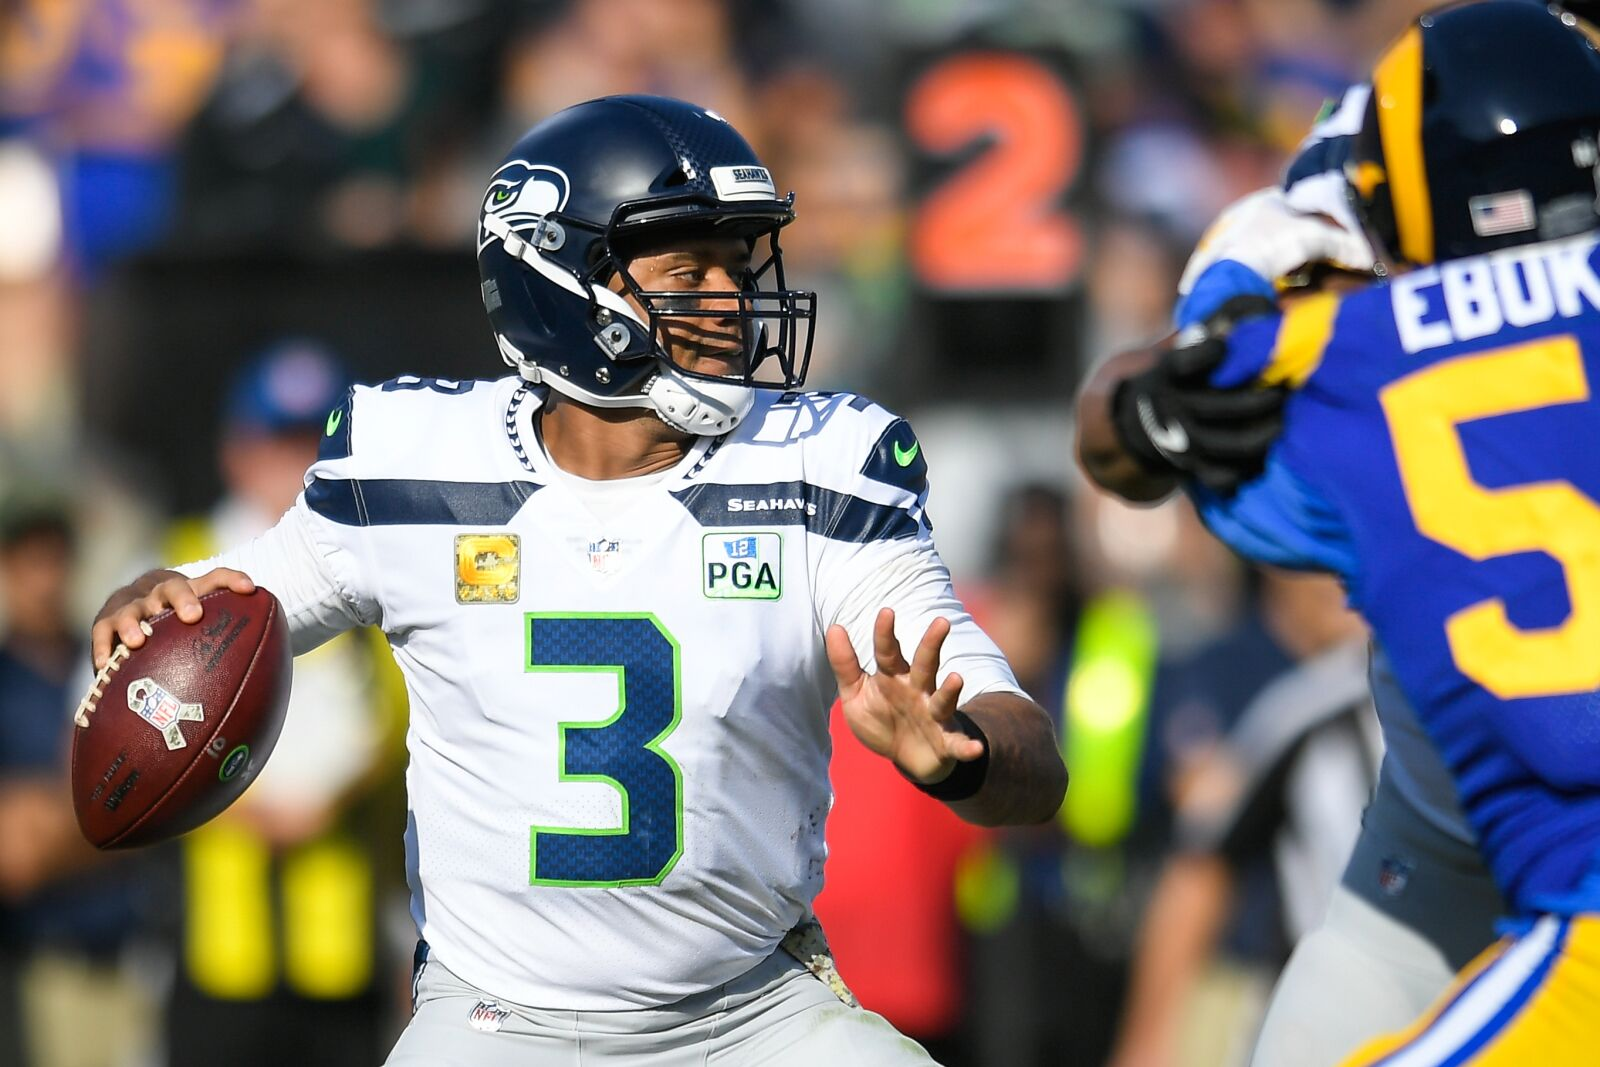 Seahawks will control Gurley and the Rams to lock up a playoff spot